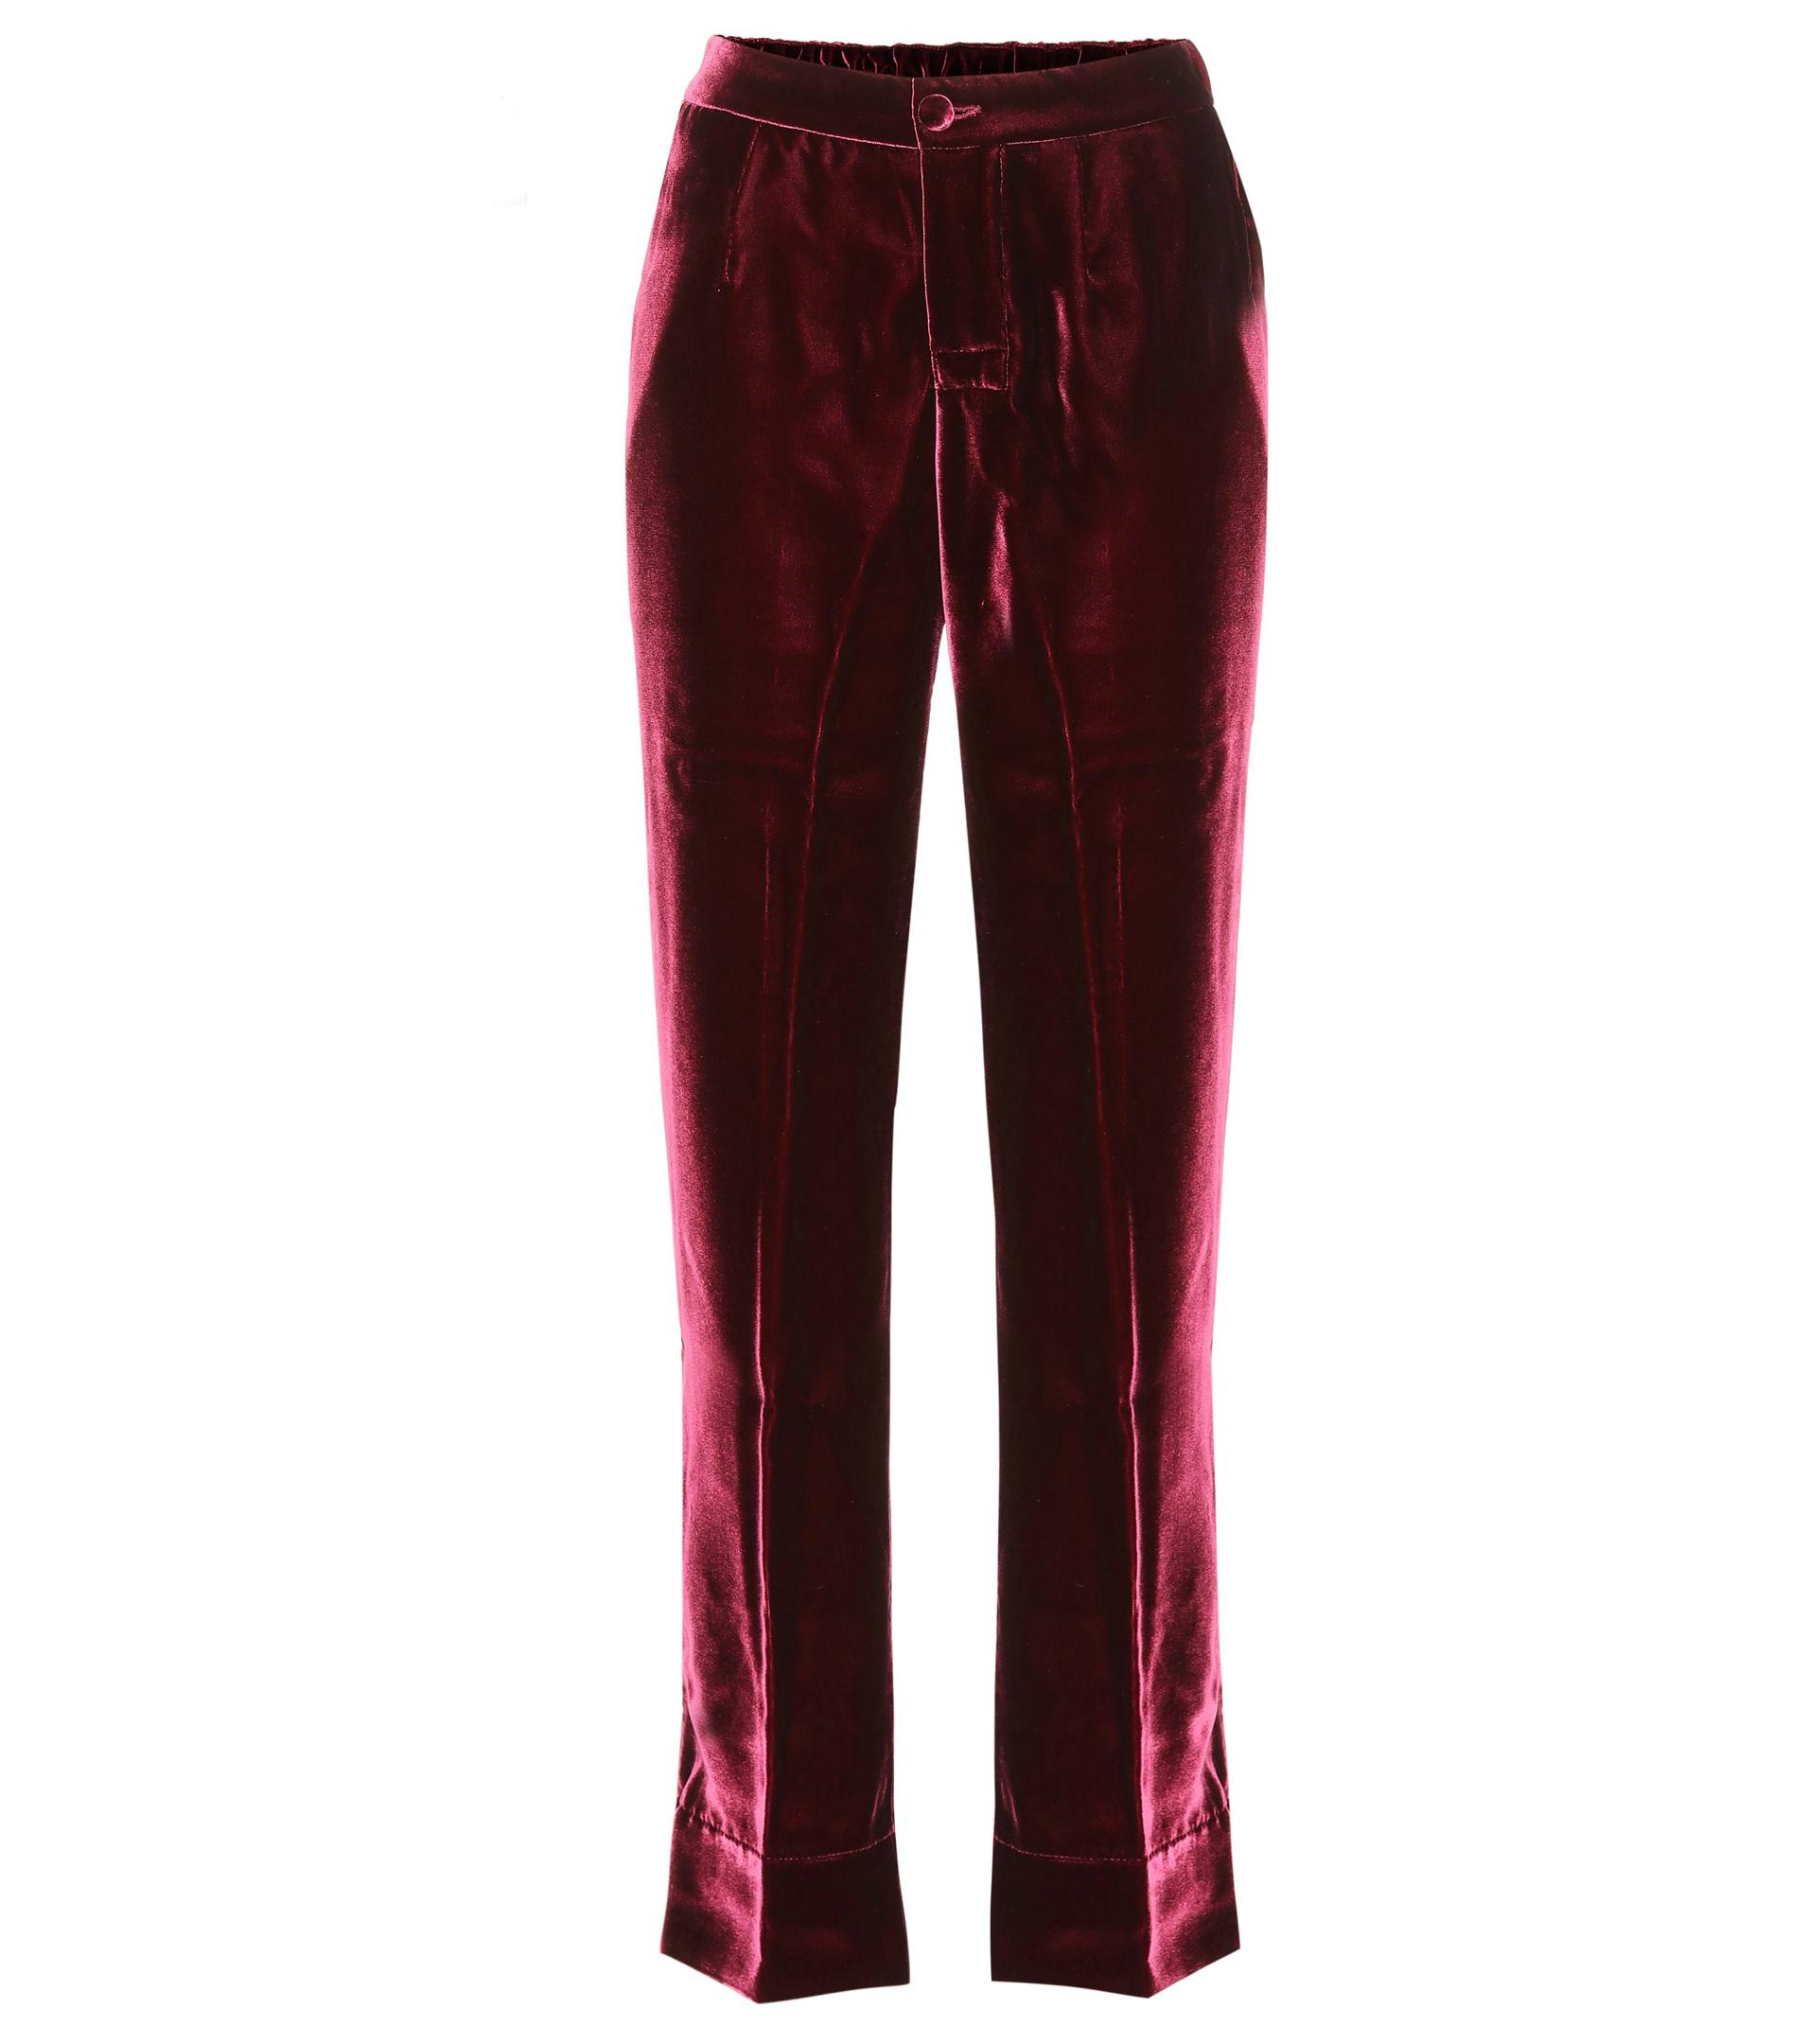 1c150f723 Lyst - F.R.S For Restless Sleepers Crono Velvet Trousers in Red